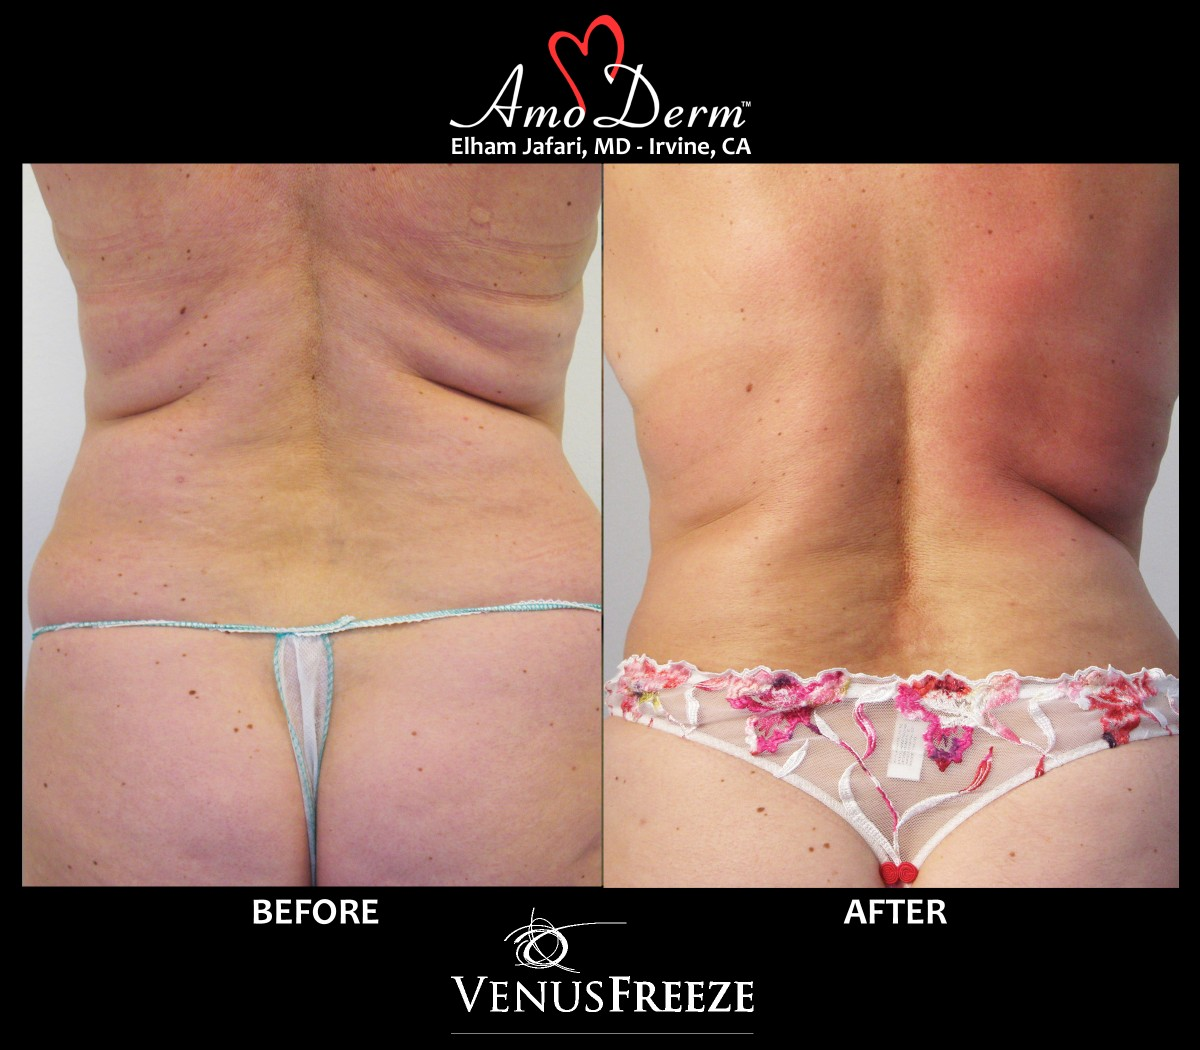 Body contouring and cellulite treatment with Venus Freeze